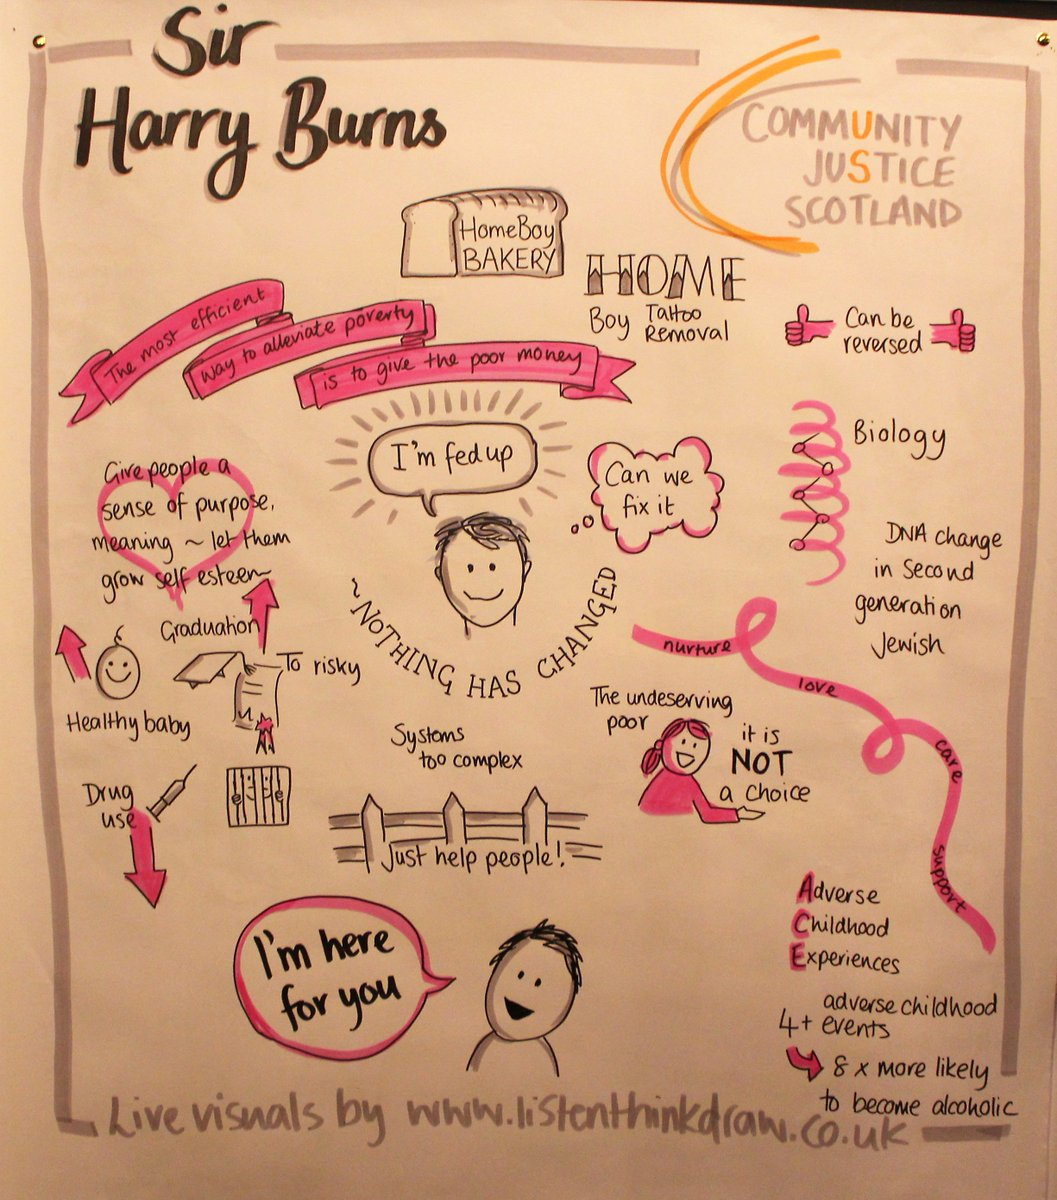 Feds Blog Promotes Restorative Justice >> Communityjusticescot On Twitter Harryburns16 Told Us He Was Fed